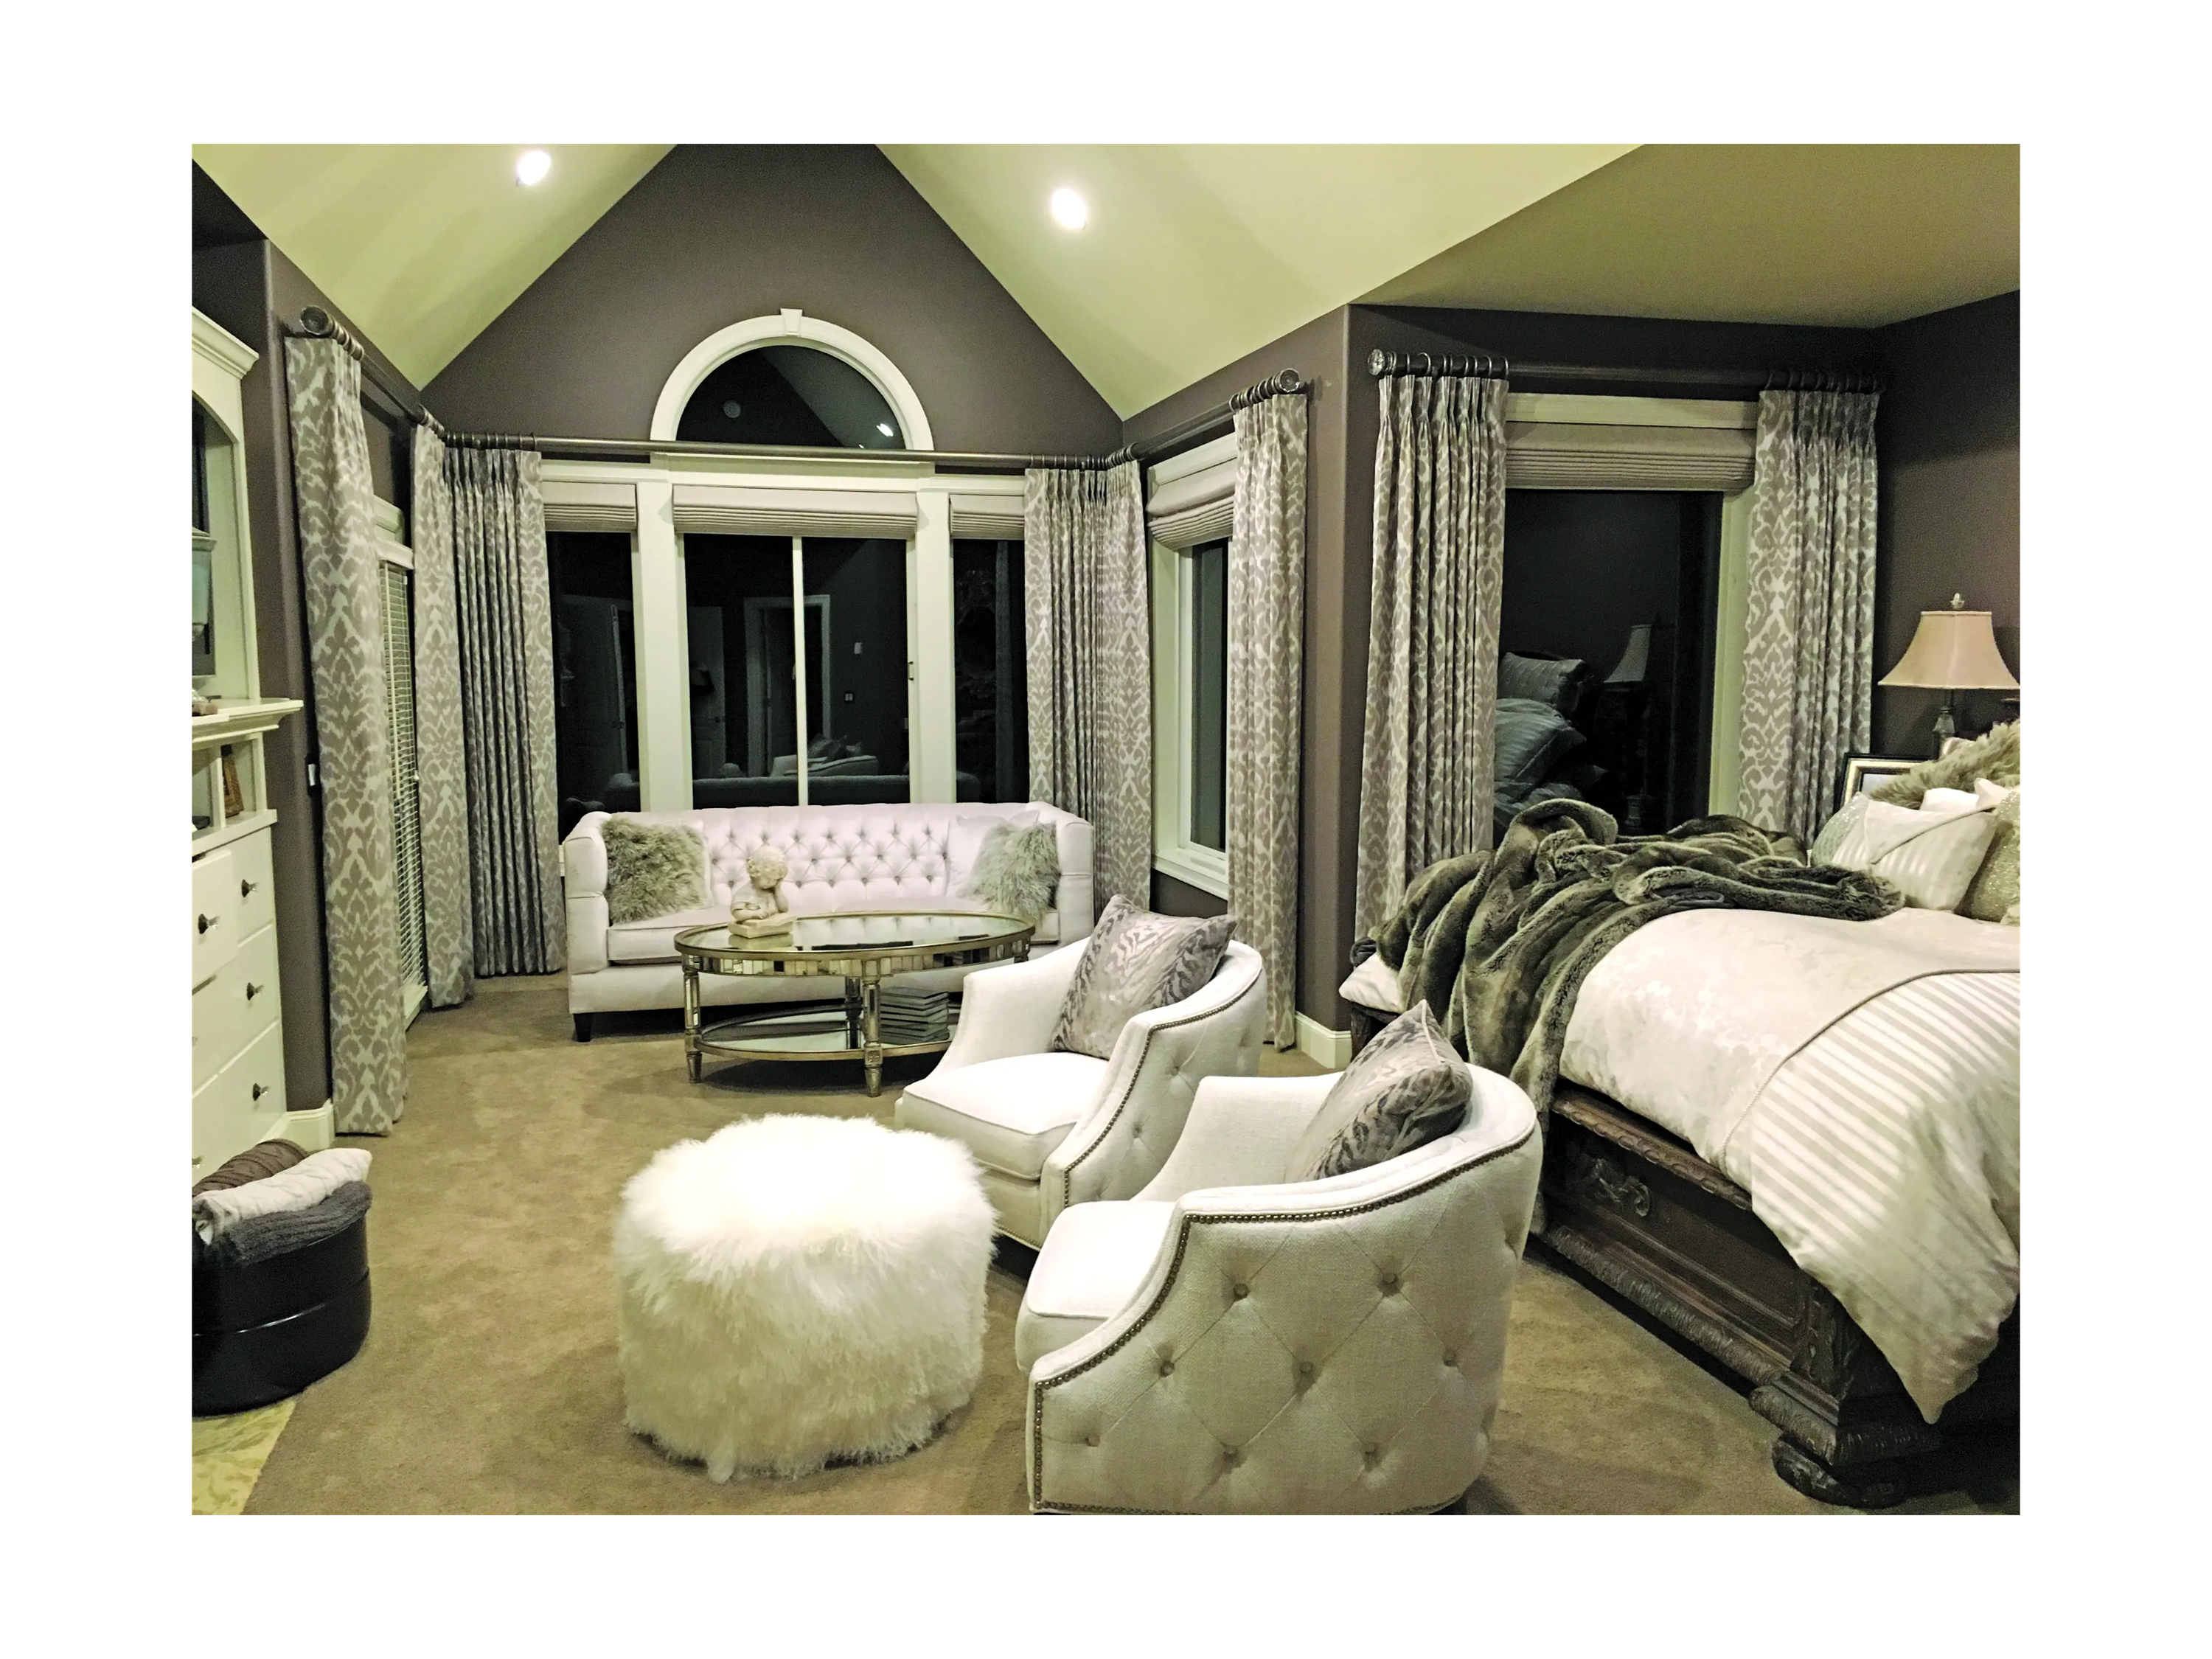 bedroom scene with two white arm chairs and furry ottoman at foot of bed. White tufted sofa in background